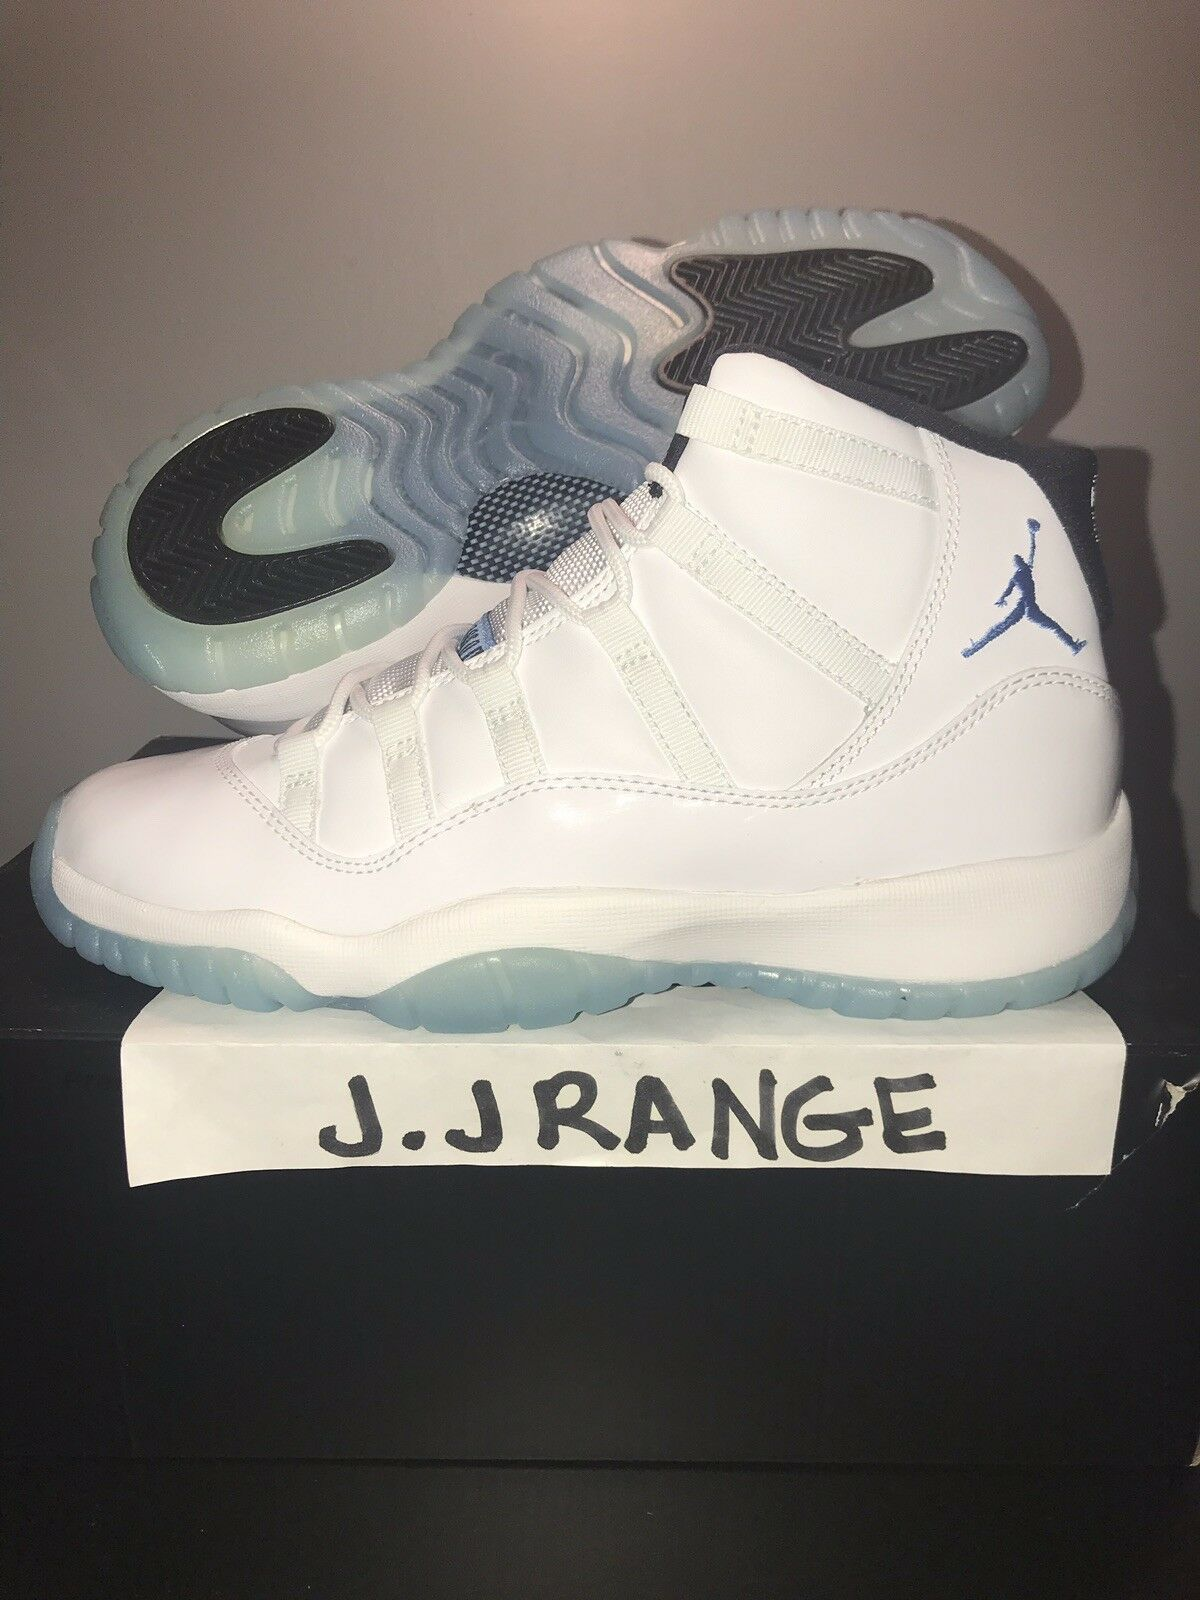 Nike Air Jordan XI 11 Retro BG WHITE LEGEND COLUMBIA blueE SIZE 6.5  378038-117